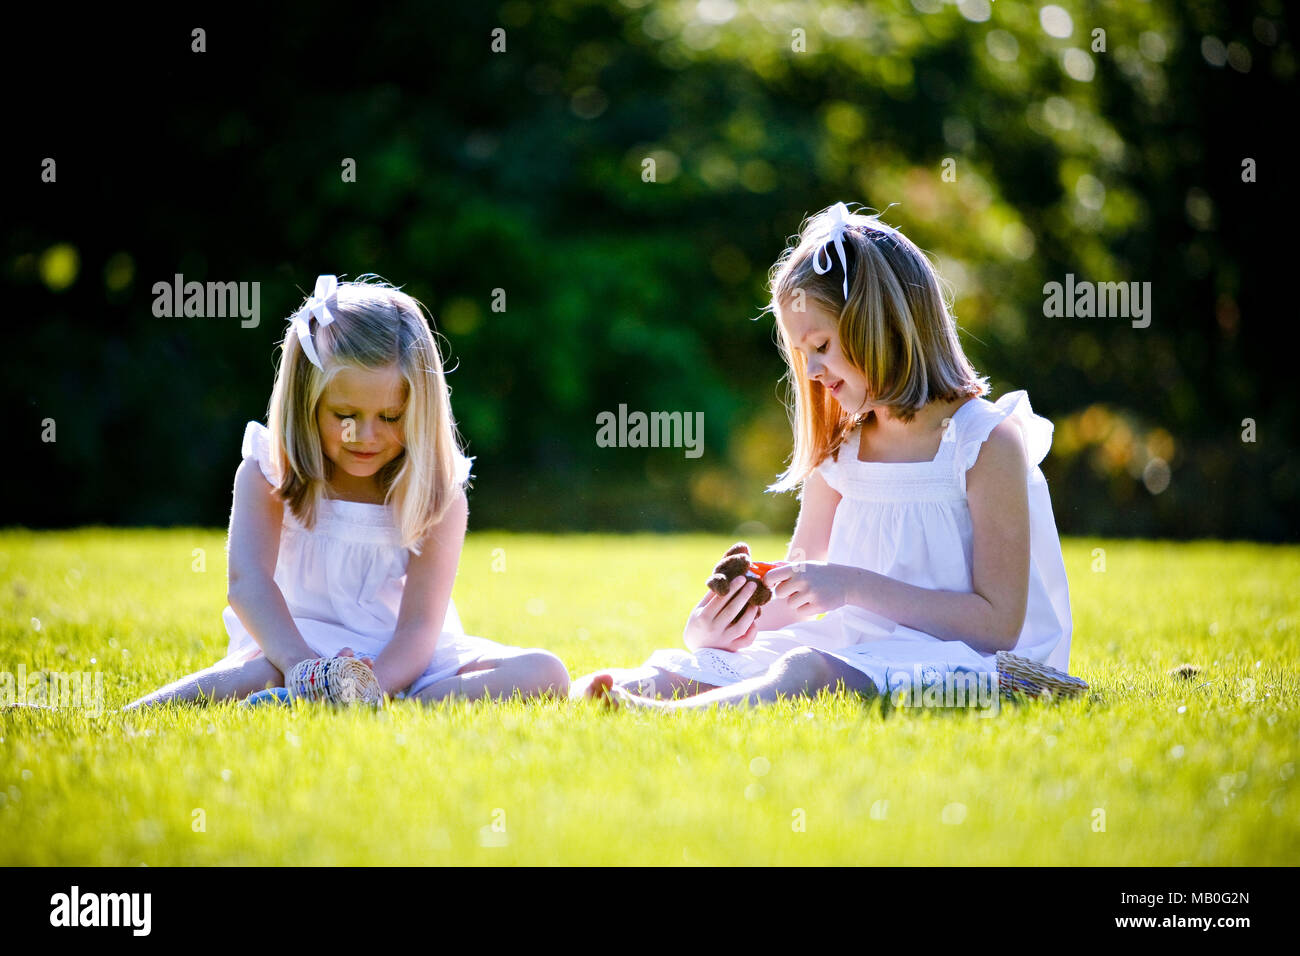 Two young pretty Caucansian girls in white skirts sitting on grass playing at a park with back lighting and blurry green background - Stock Image